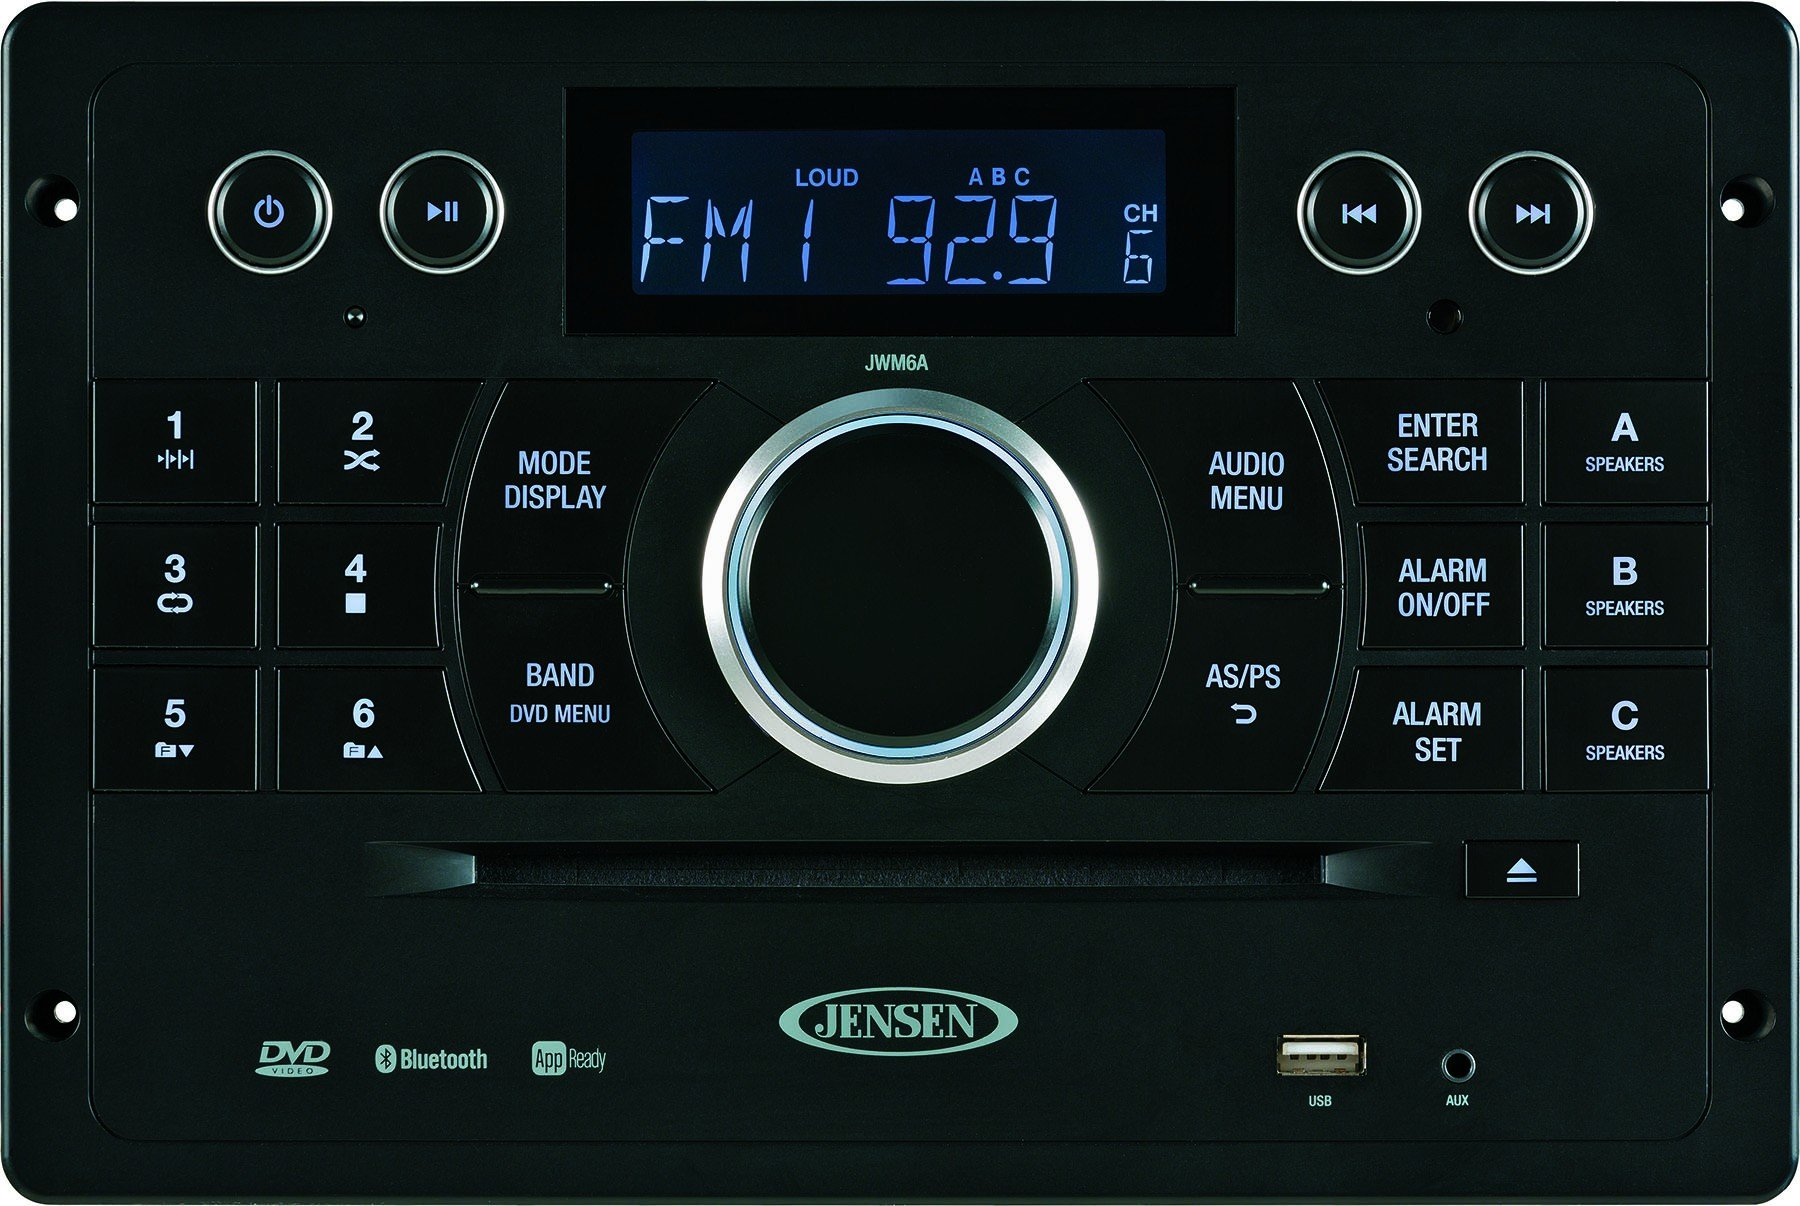 Jensen JWM6A Bluetooth Capable Device. AM, FM, DVD, USB, HDMI. Streaming Audio from Bluetooth Enabled Audio Sources Devices